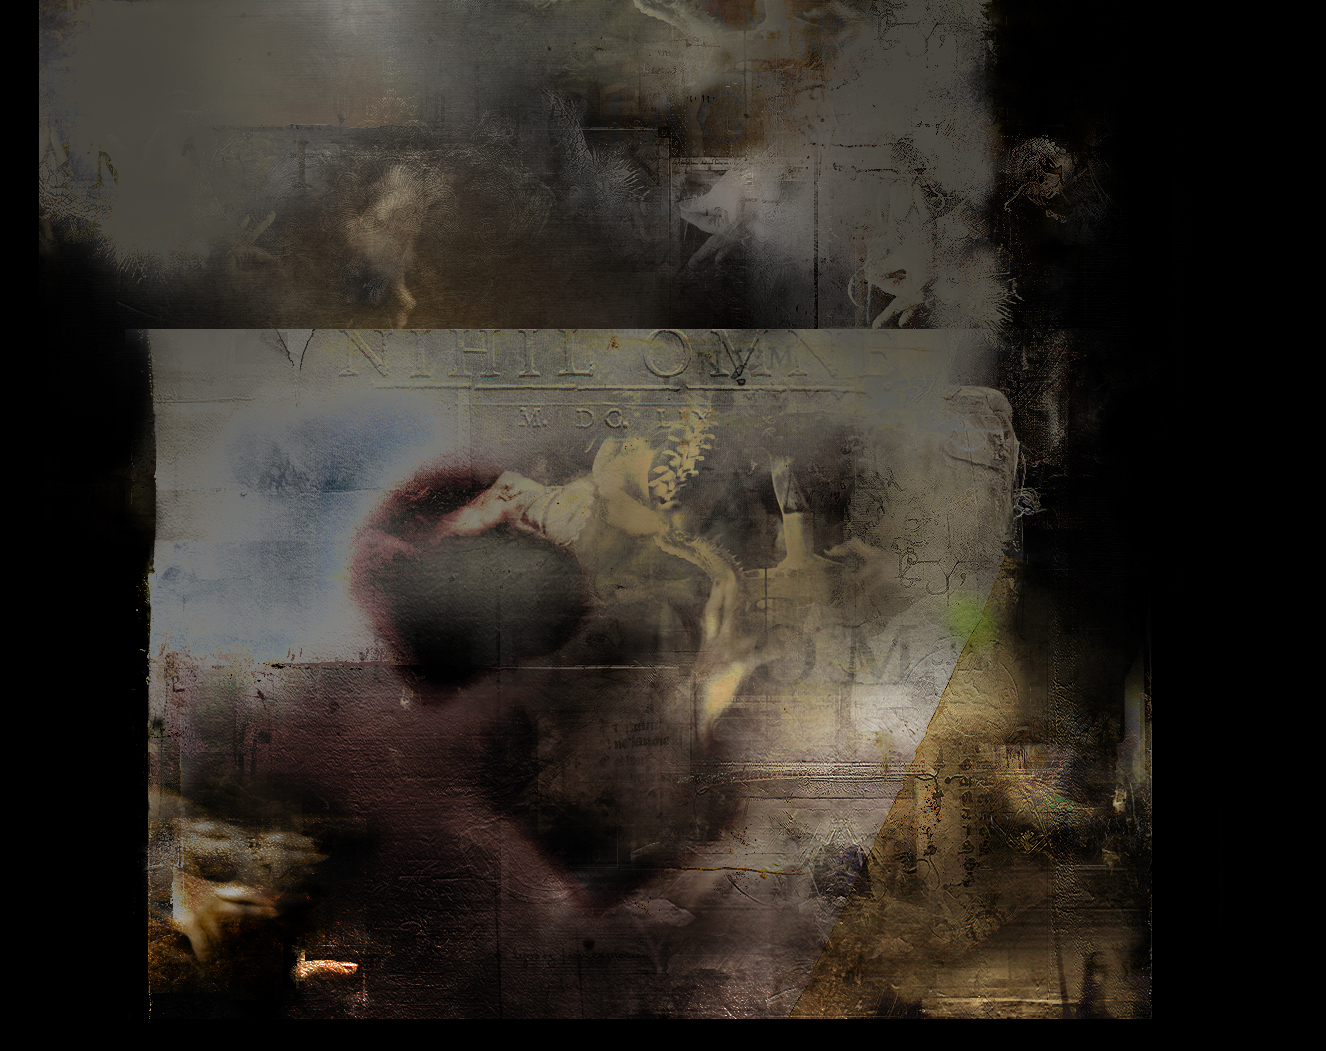 Spleen III/II, digital painting, 2012. Charles Baudelaire Illustrations.